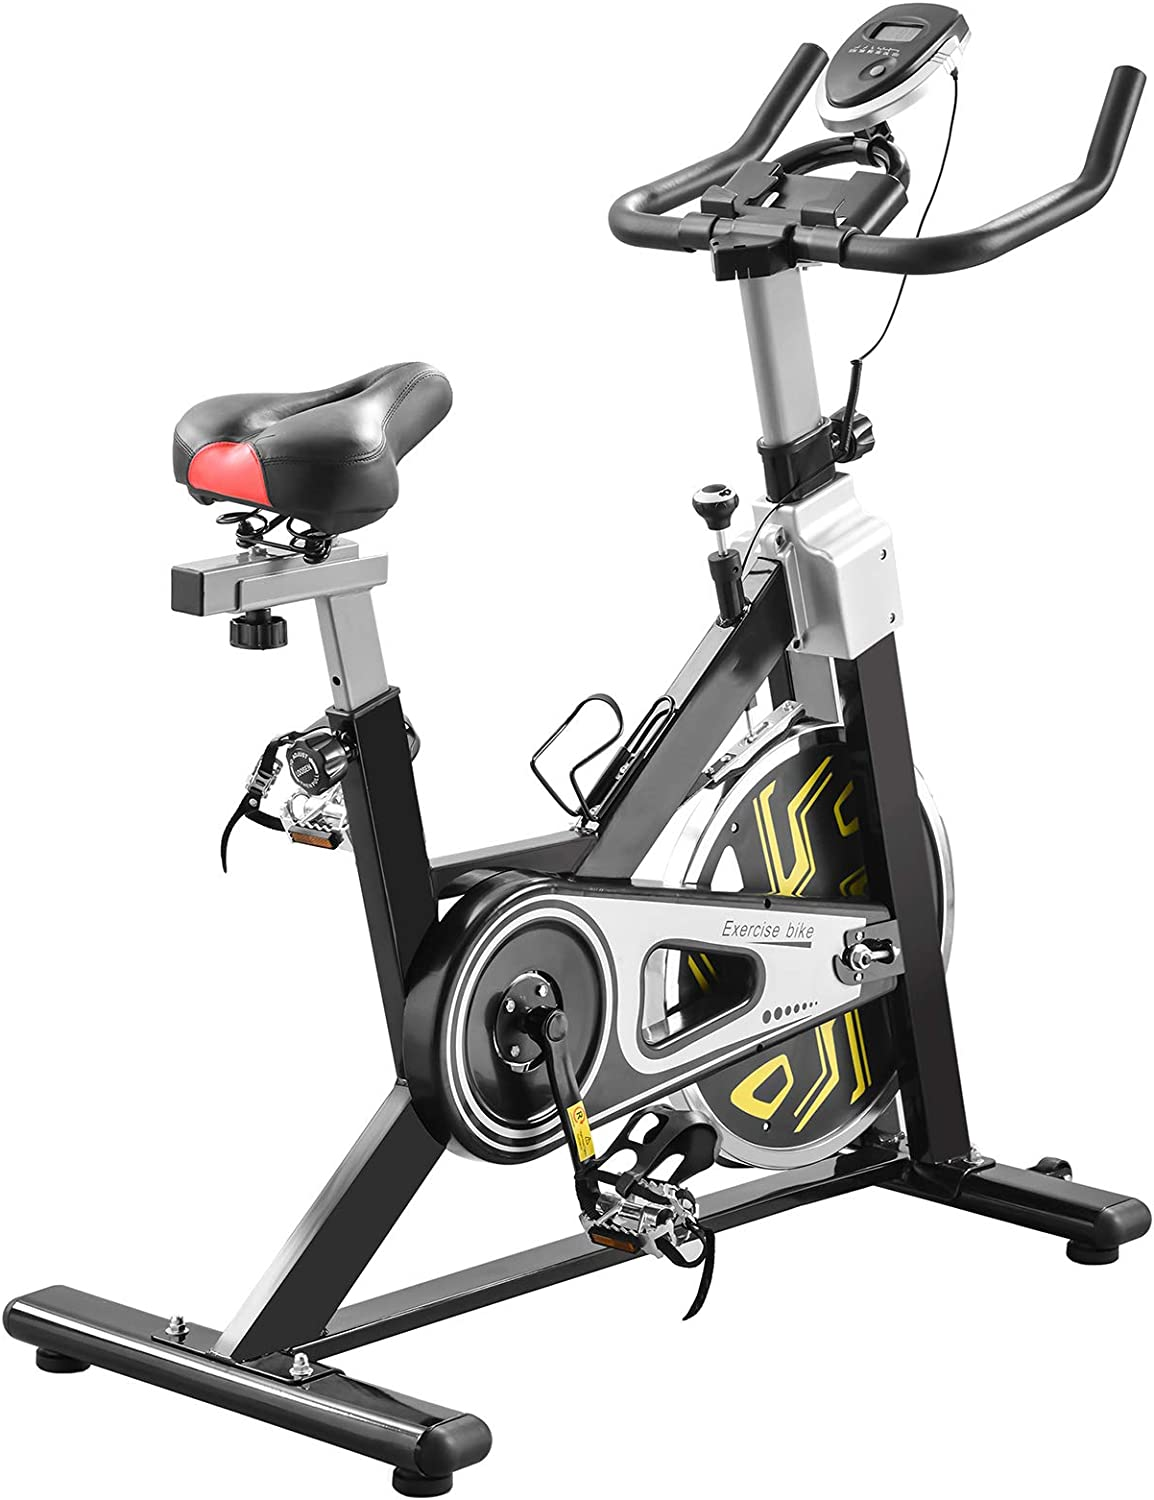 Indoor Max 73% OFF Rare Cycling Magnetic Resistance Exercise Home Duty Heavy Bike